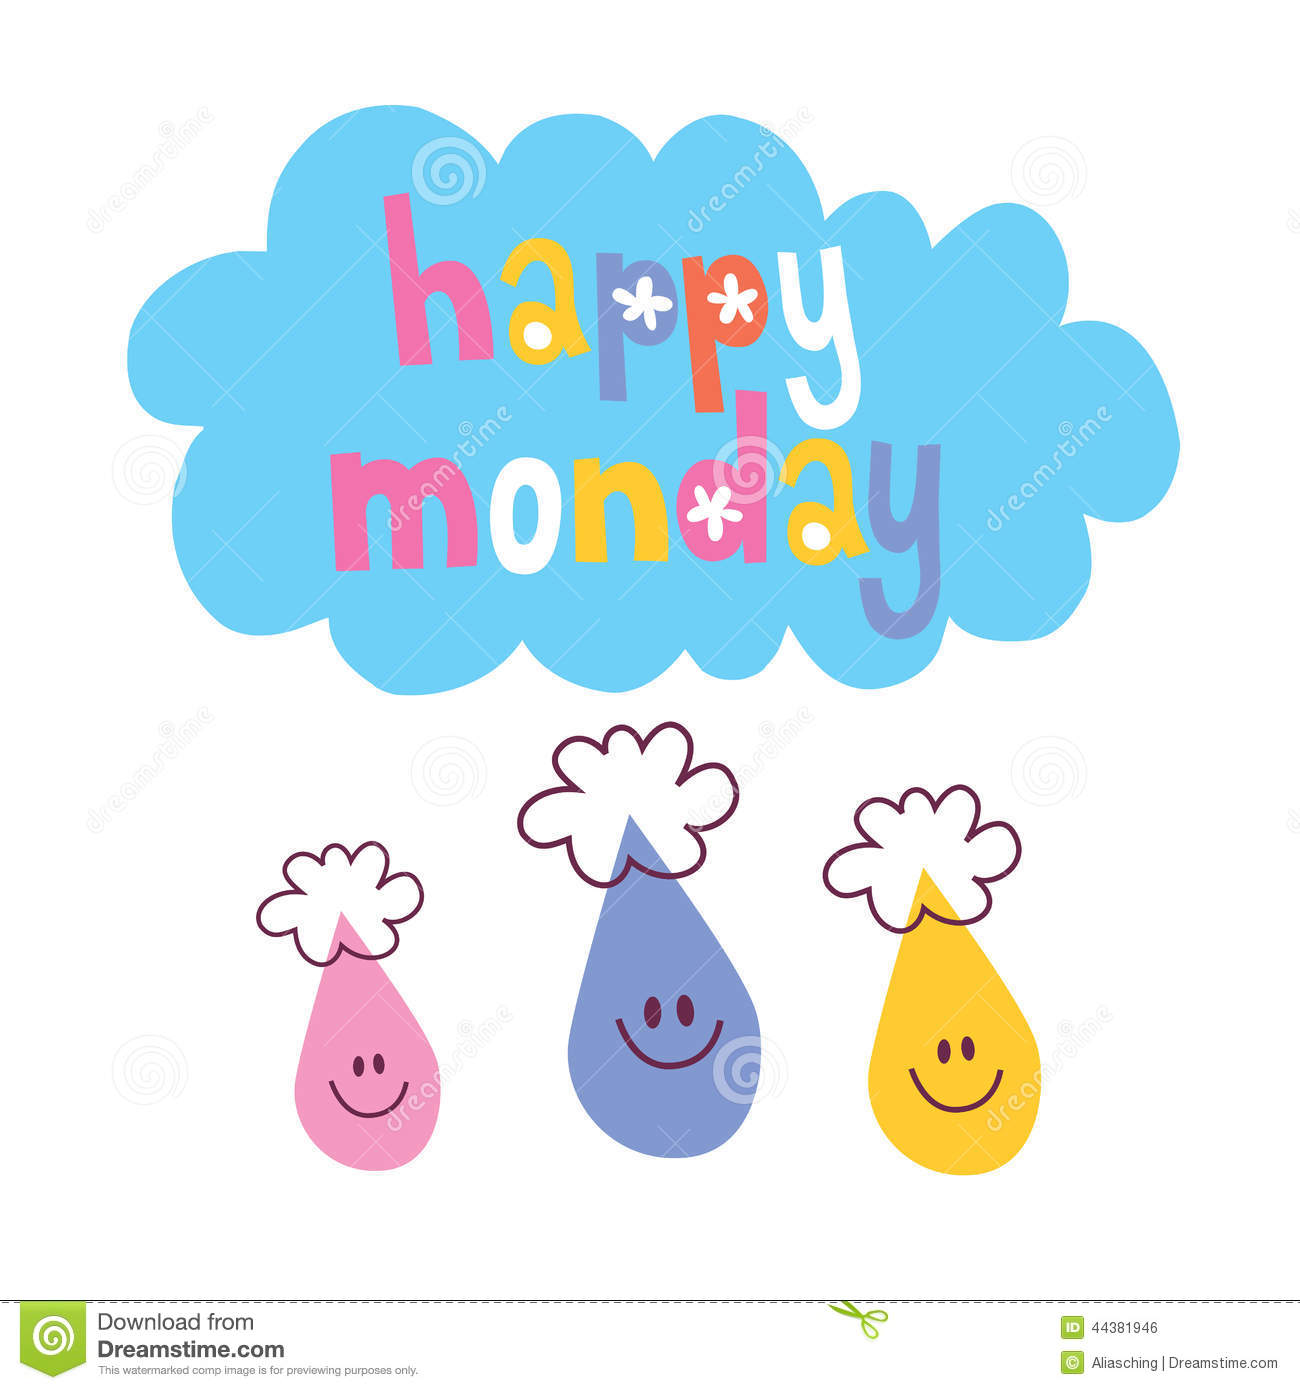 82+ Happy Monday Clip Art.